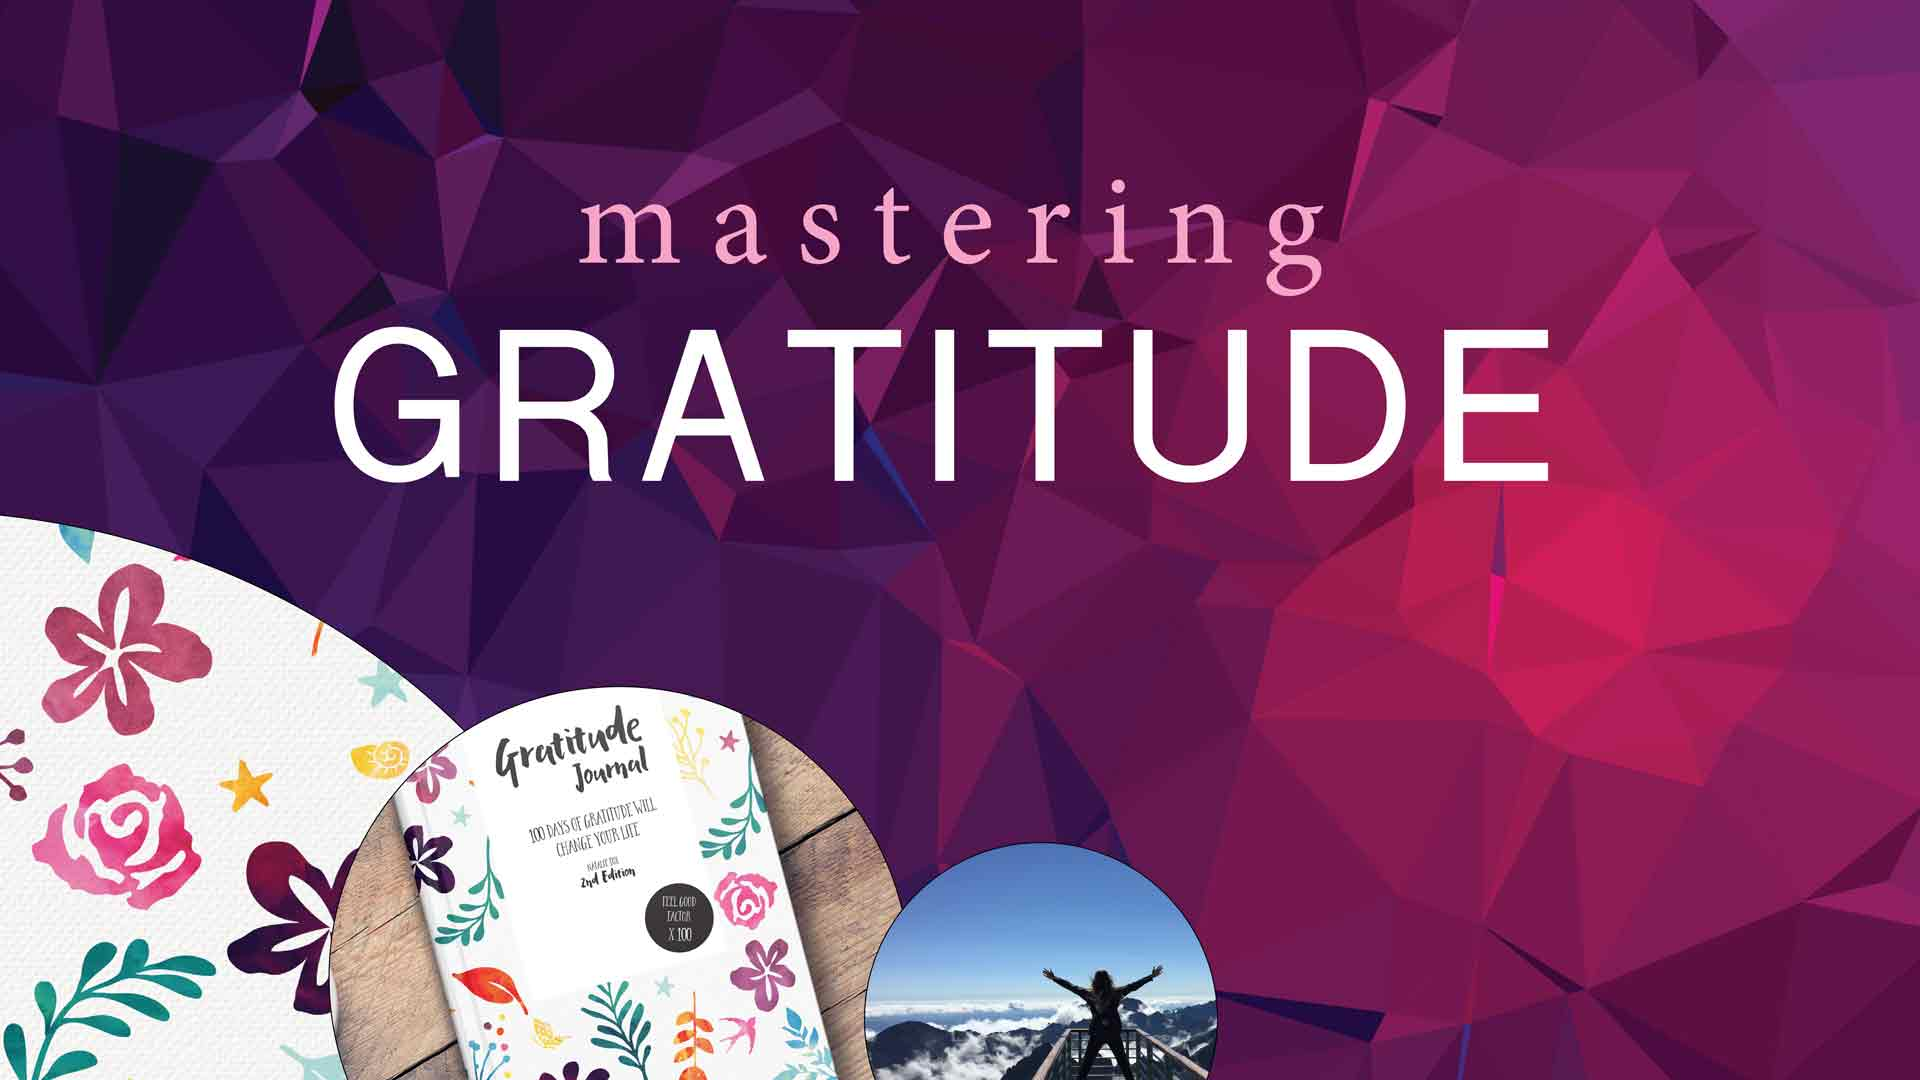 how do you practice gratitude?